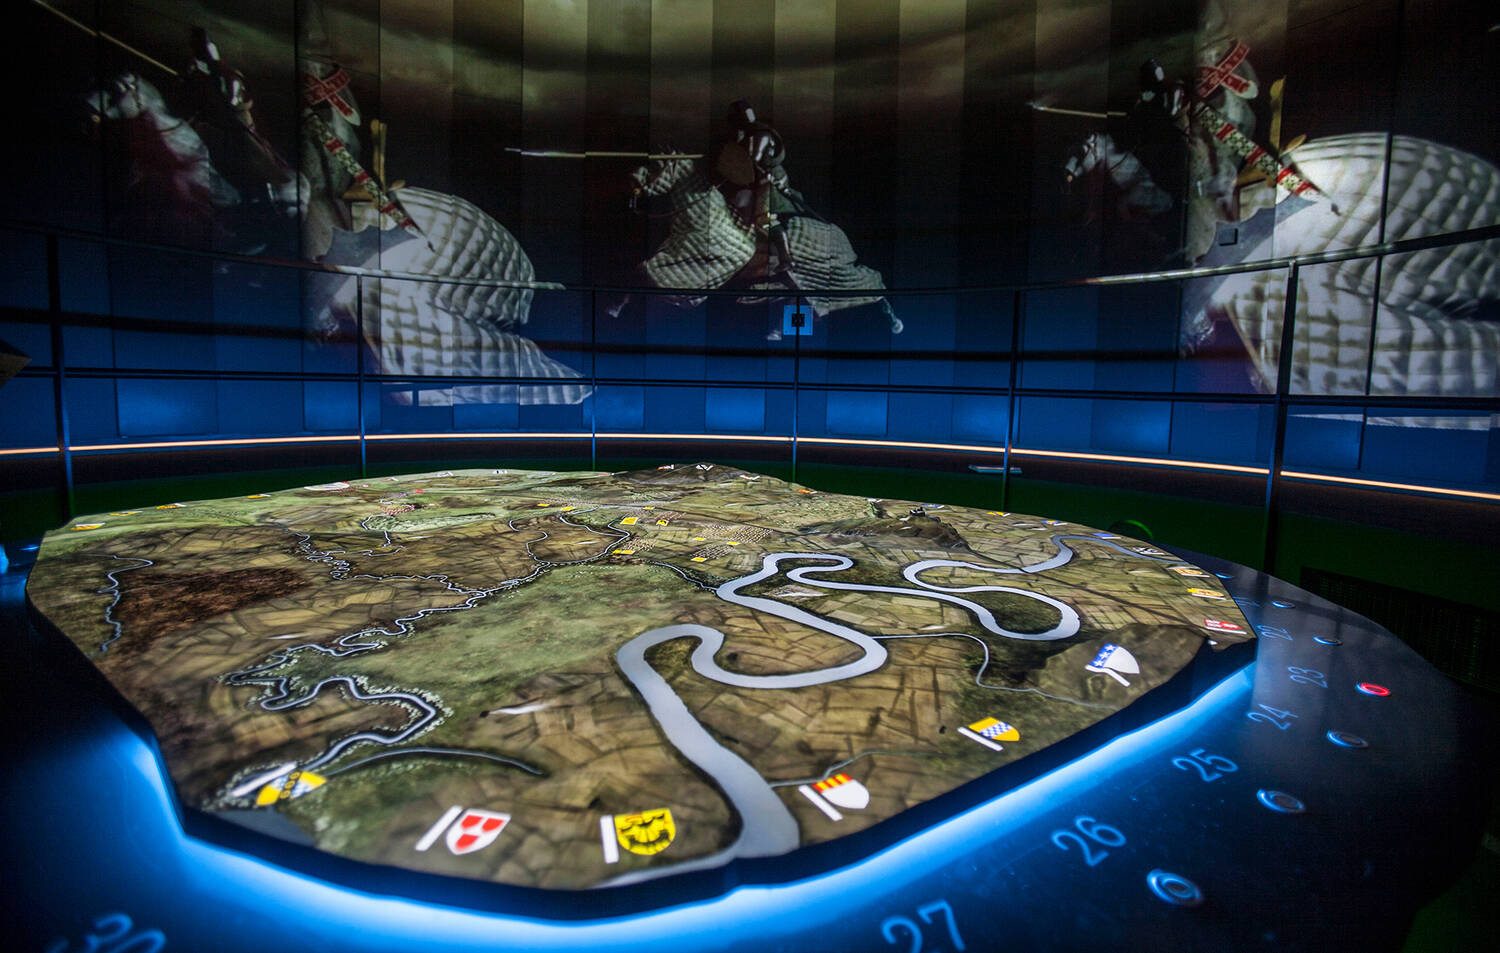 The 3D battlefield lit up in a dark Battle Room. The walls show screens with images of soldiers on horseback, carrying spears.